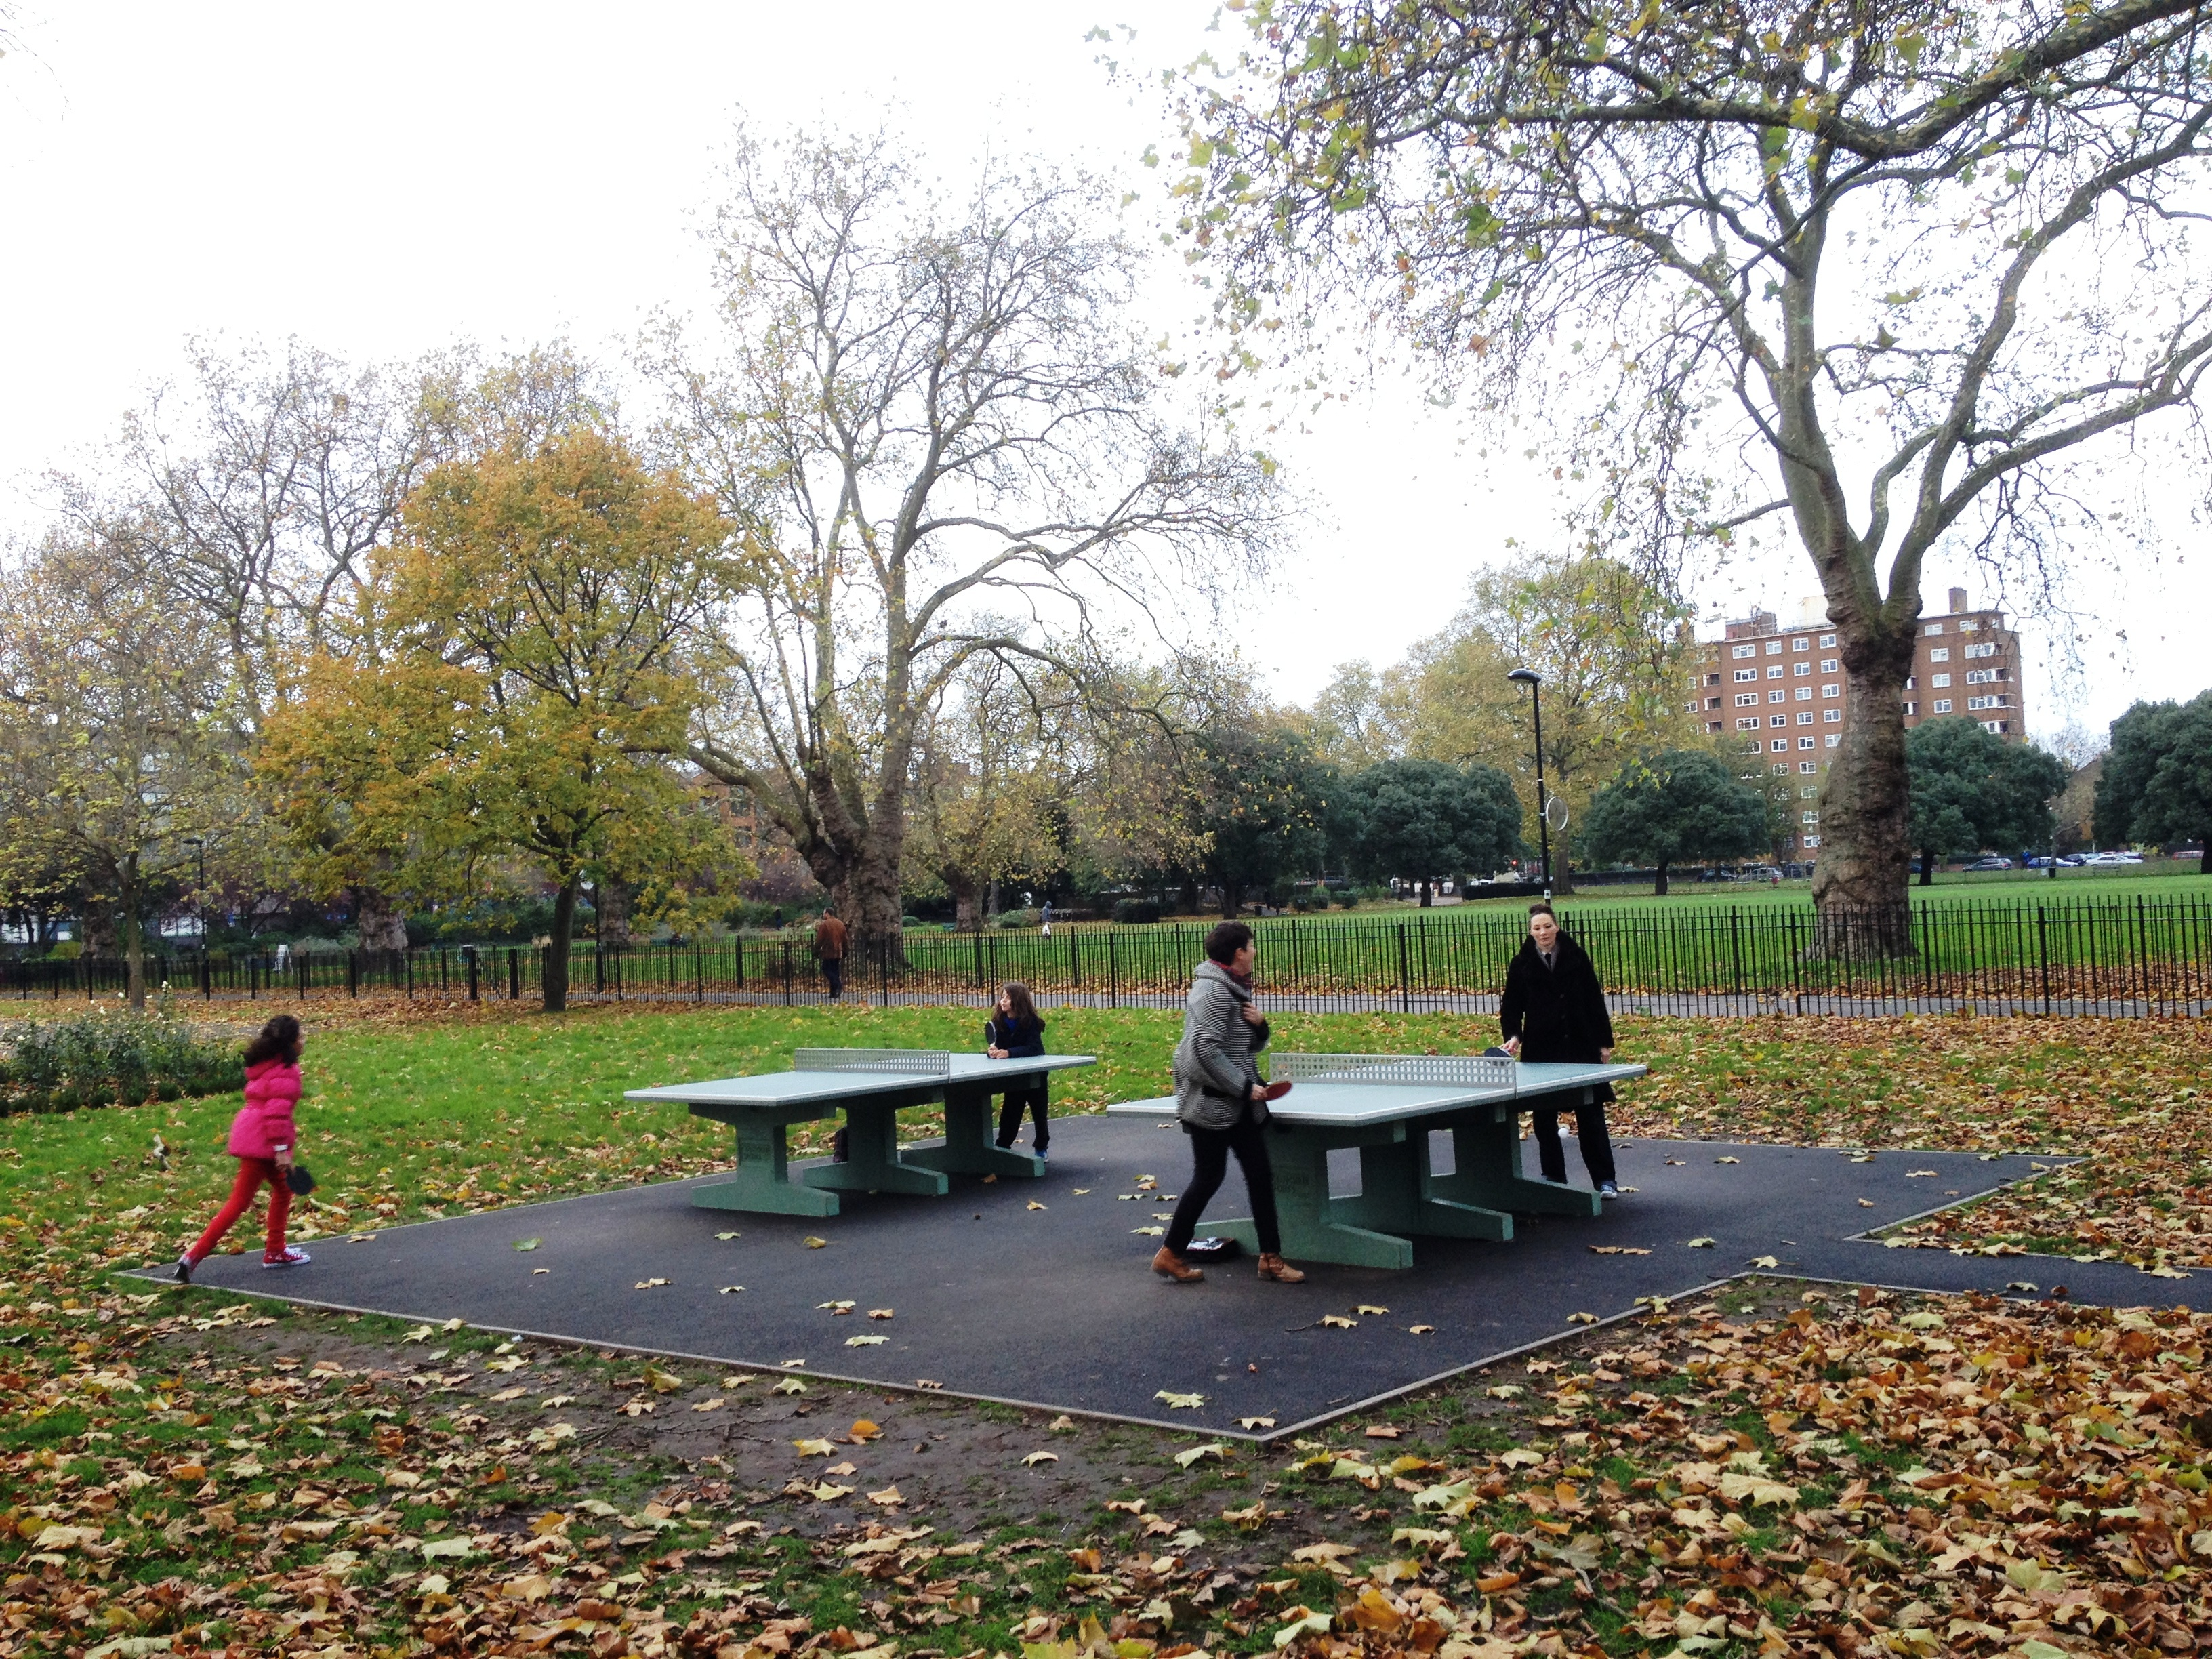 Kennington Park table tennis - kenningtonrunoff.com